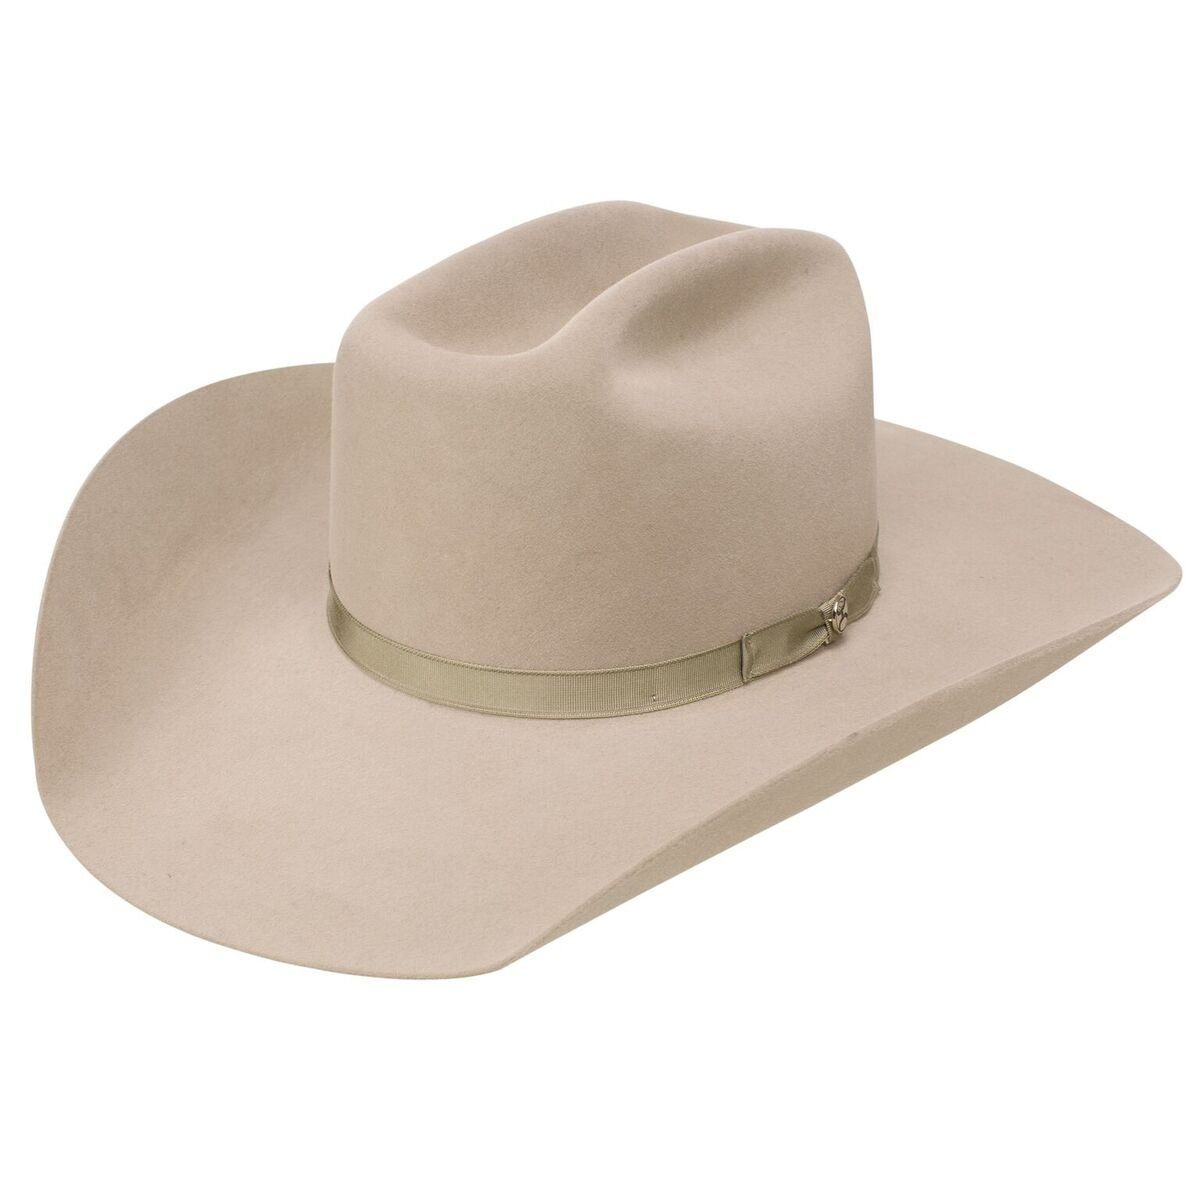 7677f236c6a8a Resistol Hooey Palo Duro 6X Men s Cowboy Hat at Amazon Men s Clothing store